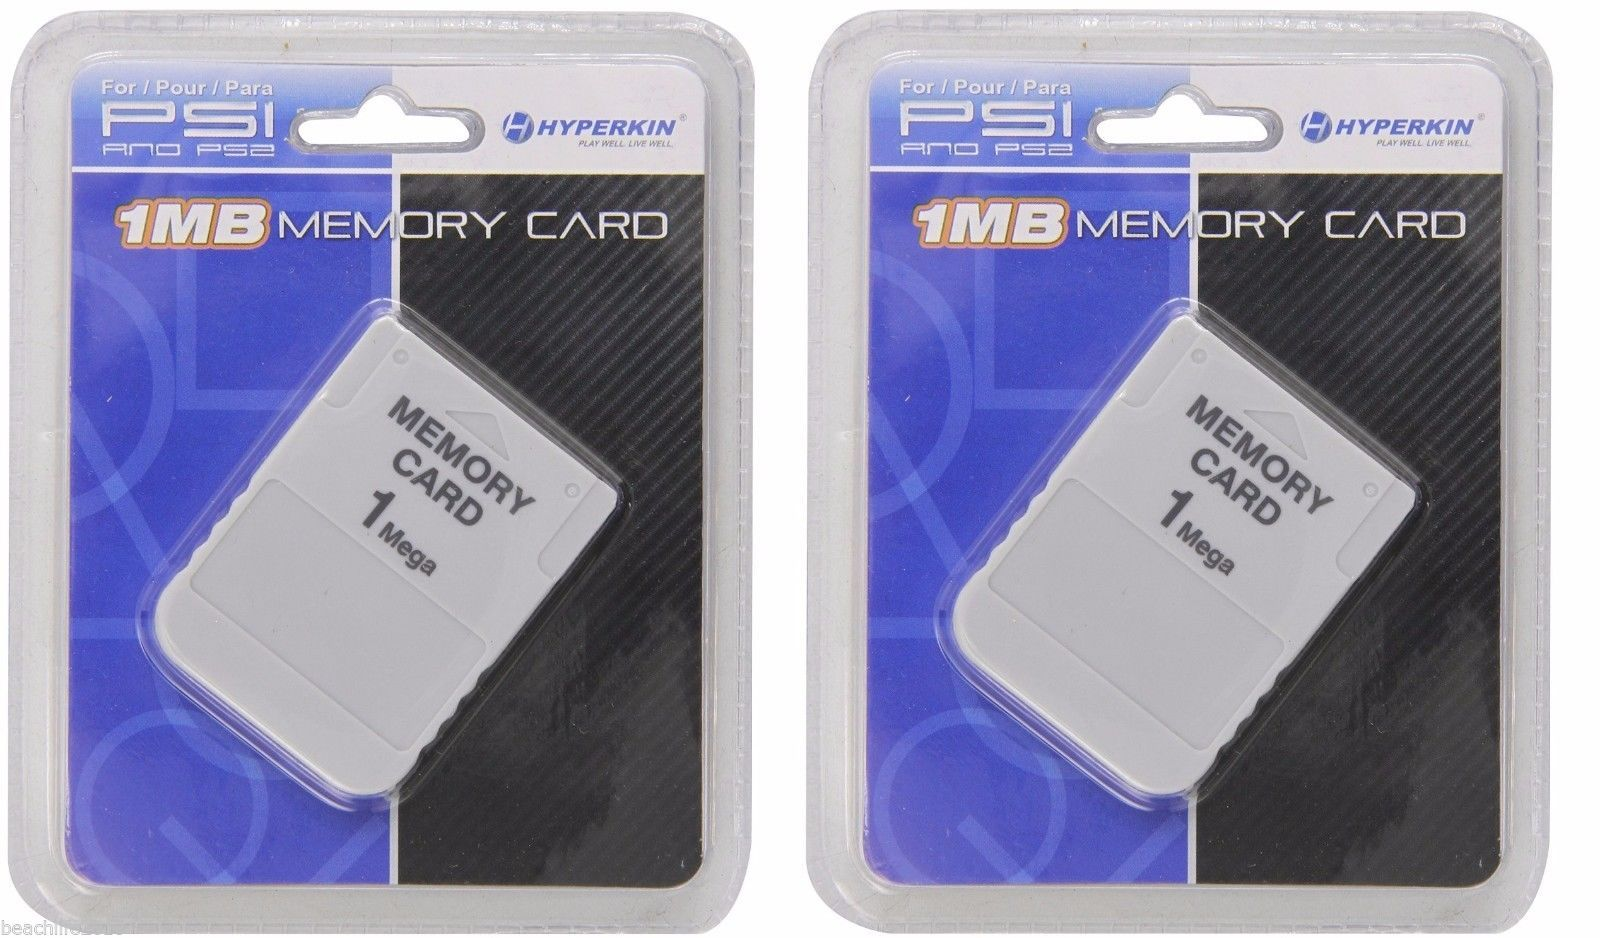 2 Pack of Hyperkin PS1 Memory Card 1 MBPlaystation 1 PS1 PSX Game BRAND NEW